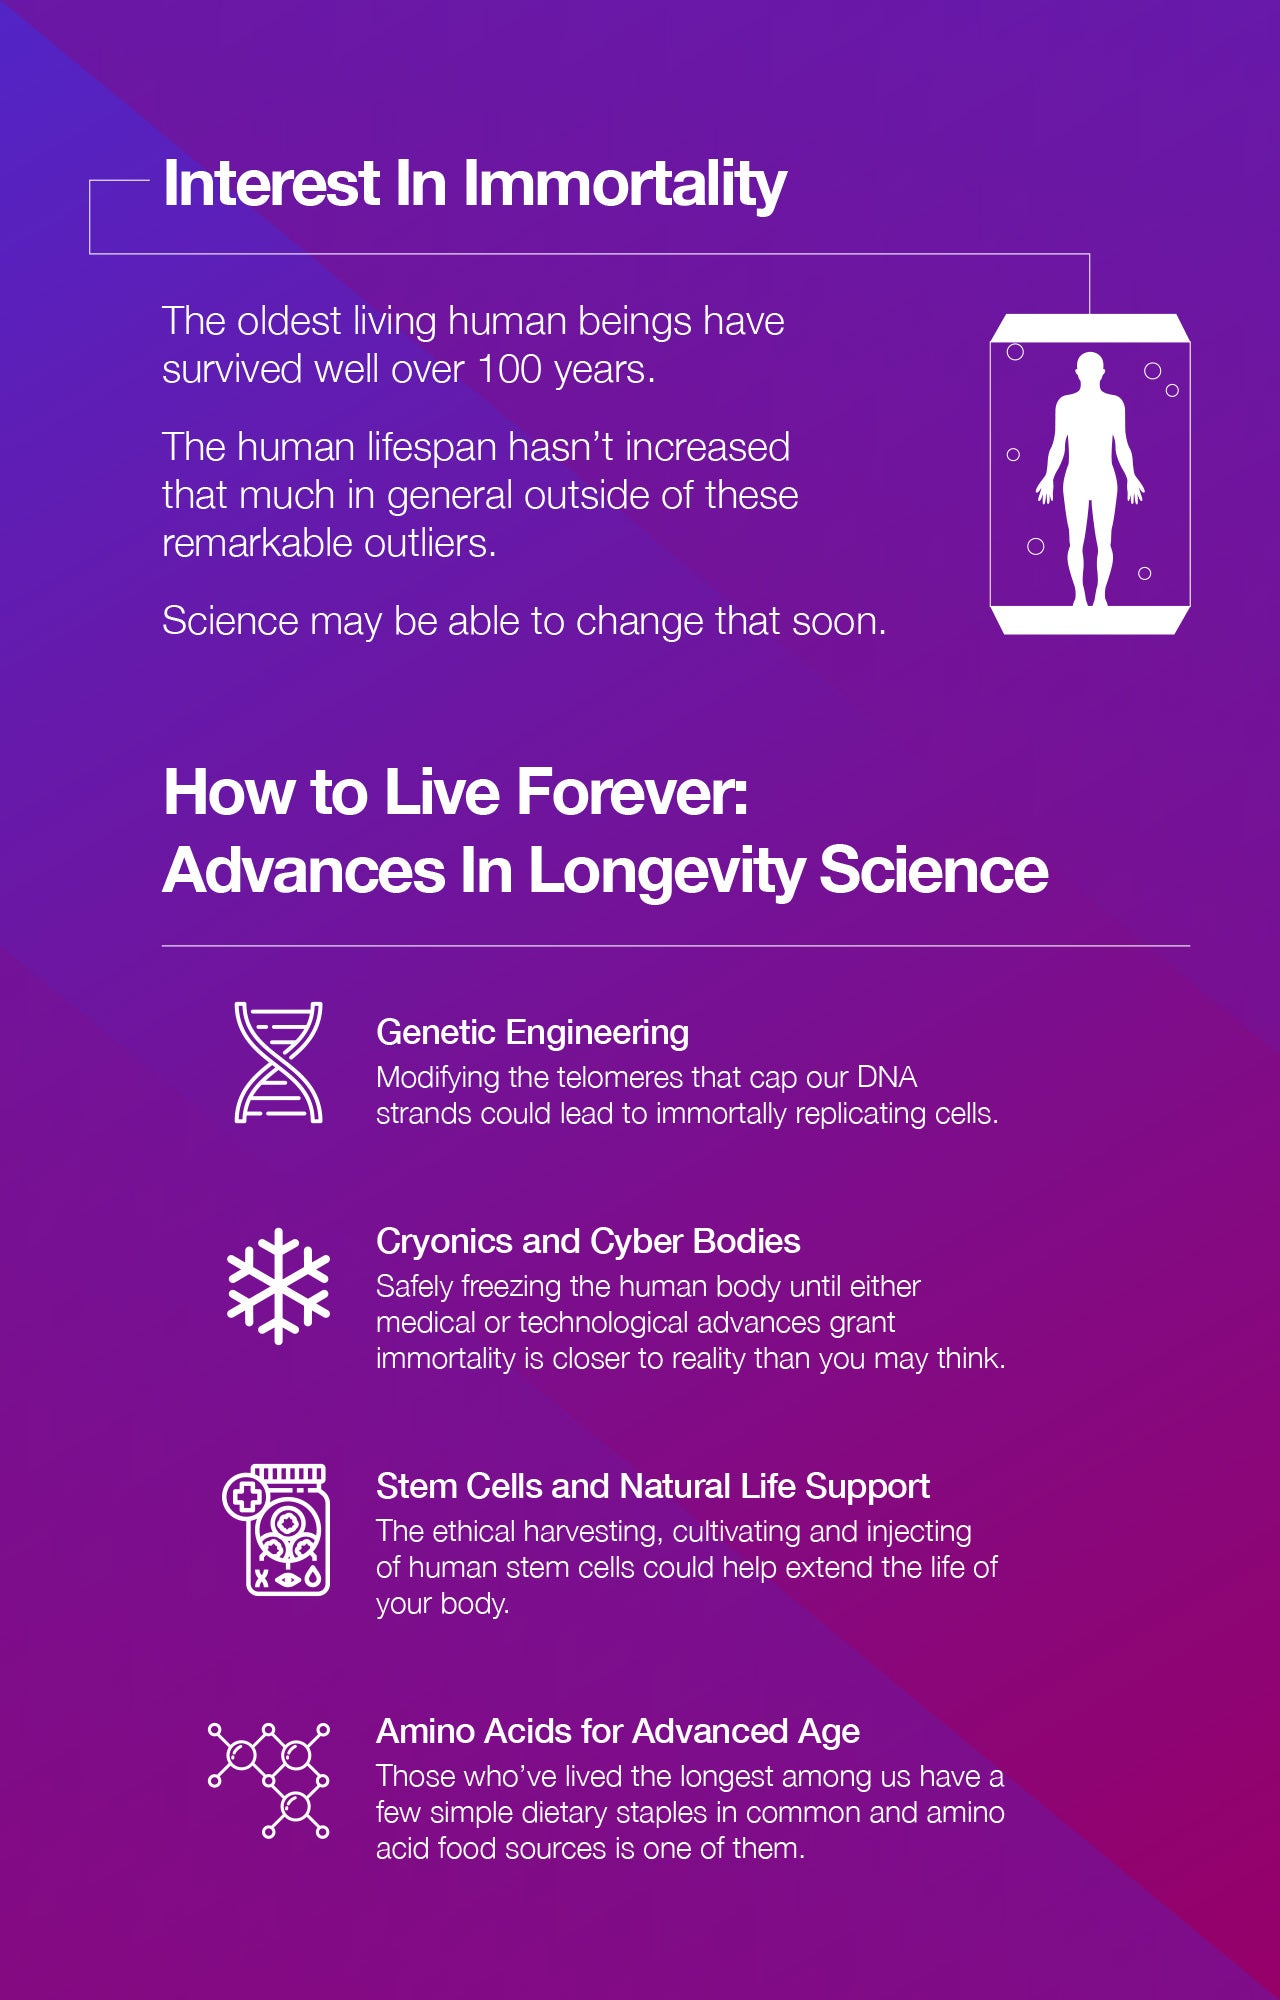 How to Live Forever: Advances In Longevity Science